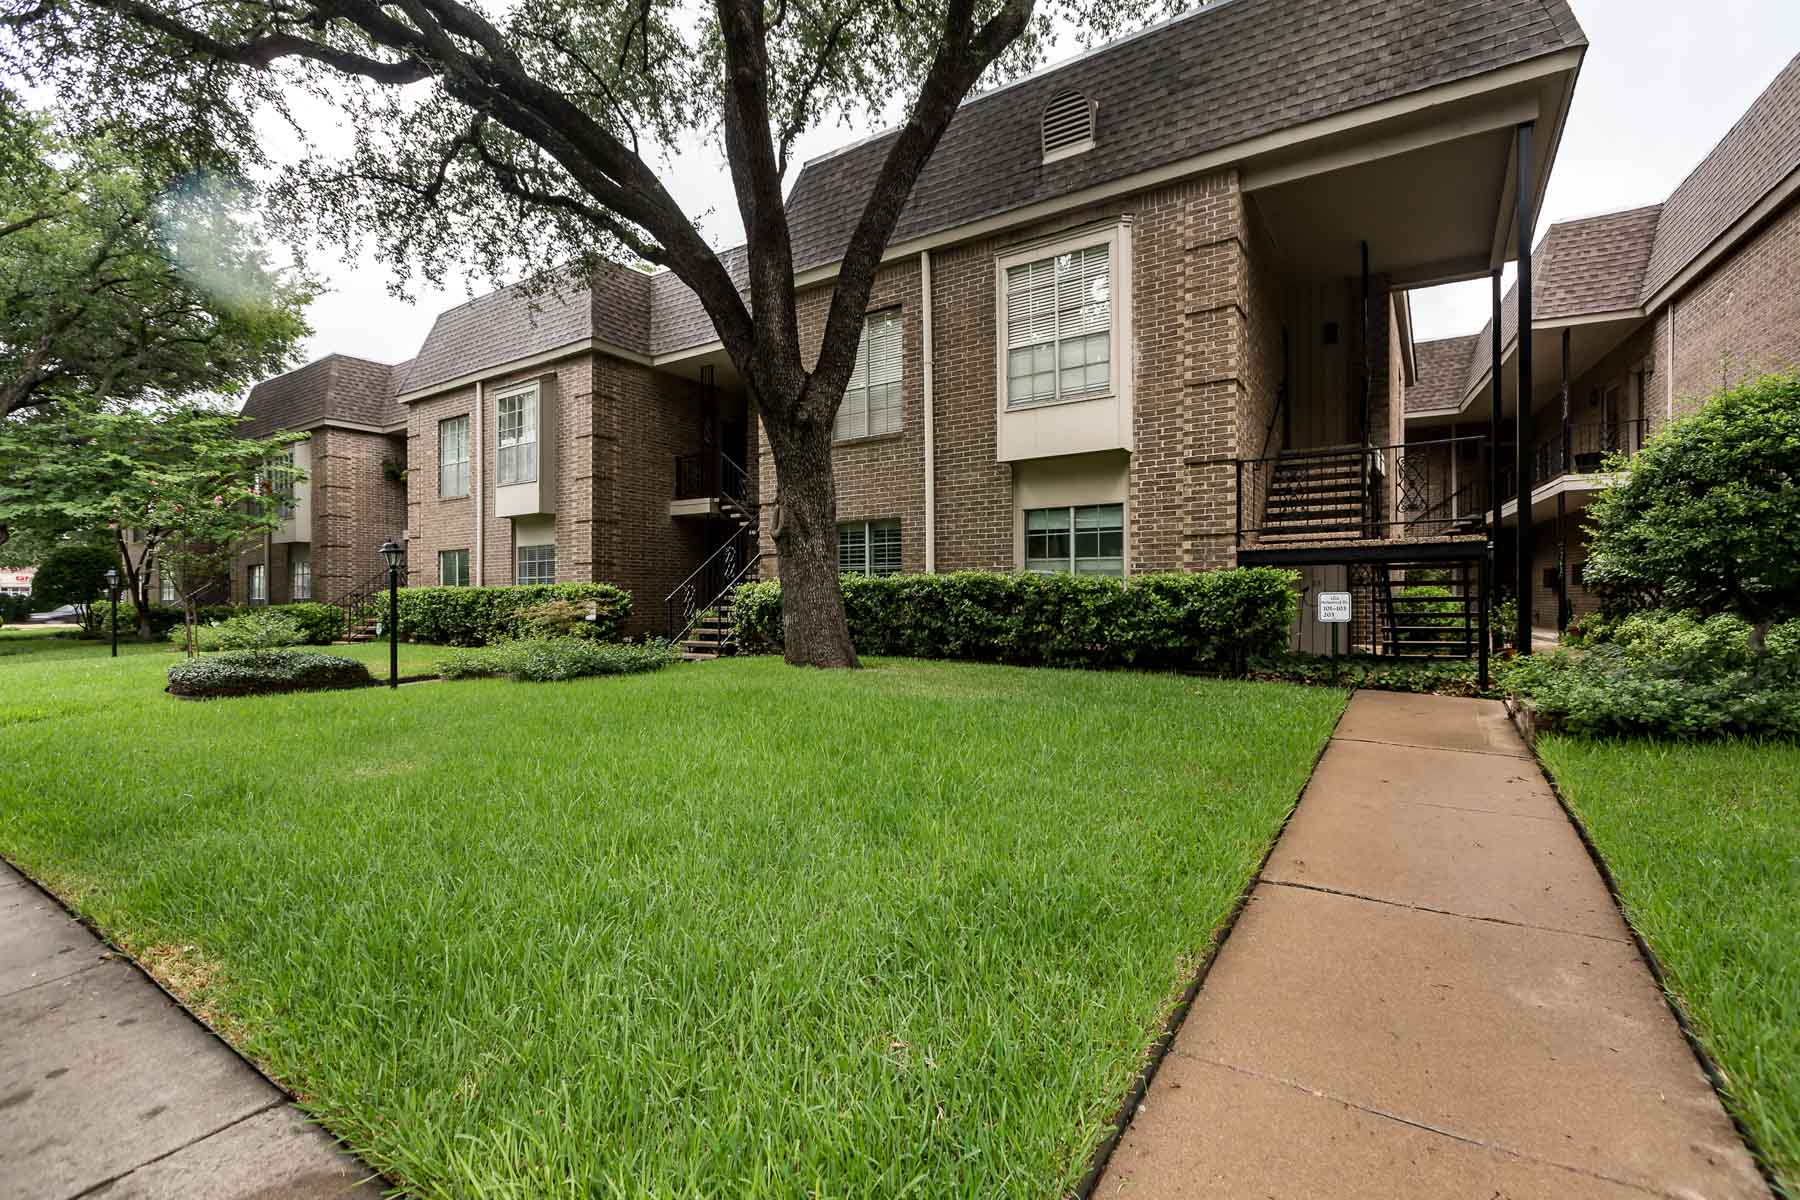 Copropriété pour l Vente à Nicely updated spacious 1 bedroom 4434 Harlanwood Dr. #221 Fort Worth, Texas, 76109 États-Unis